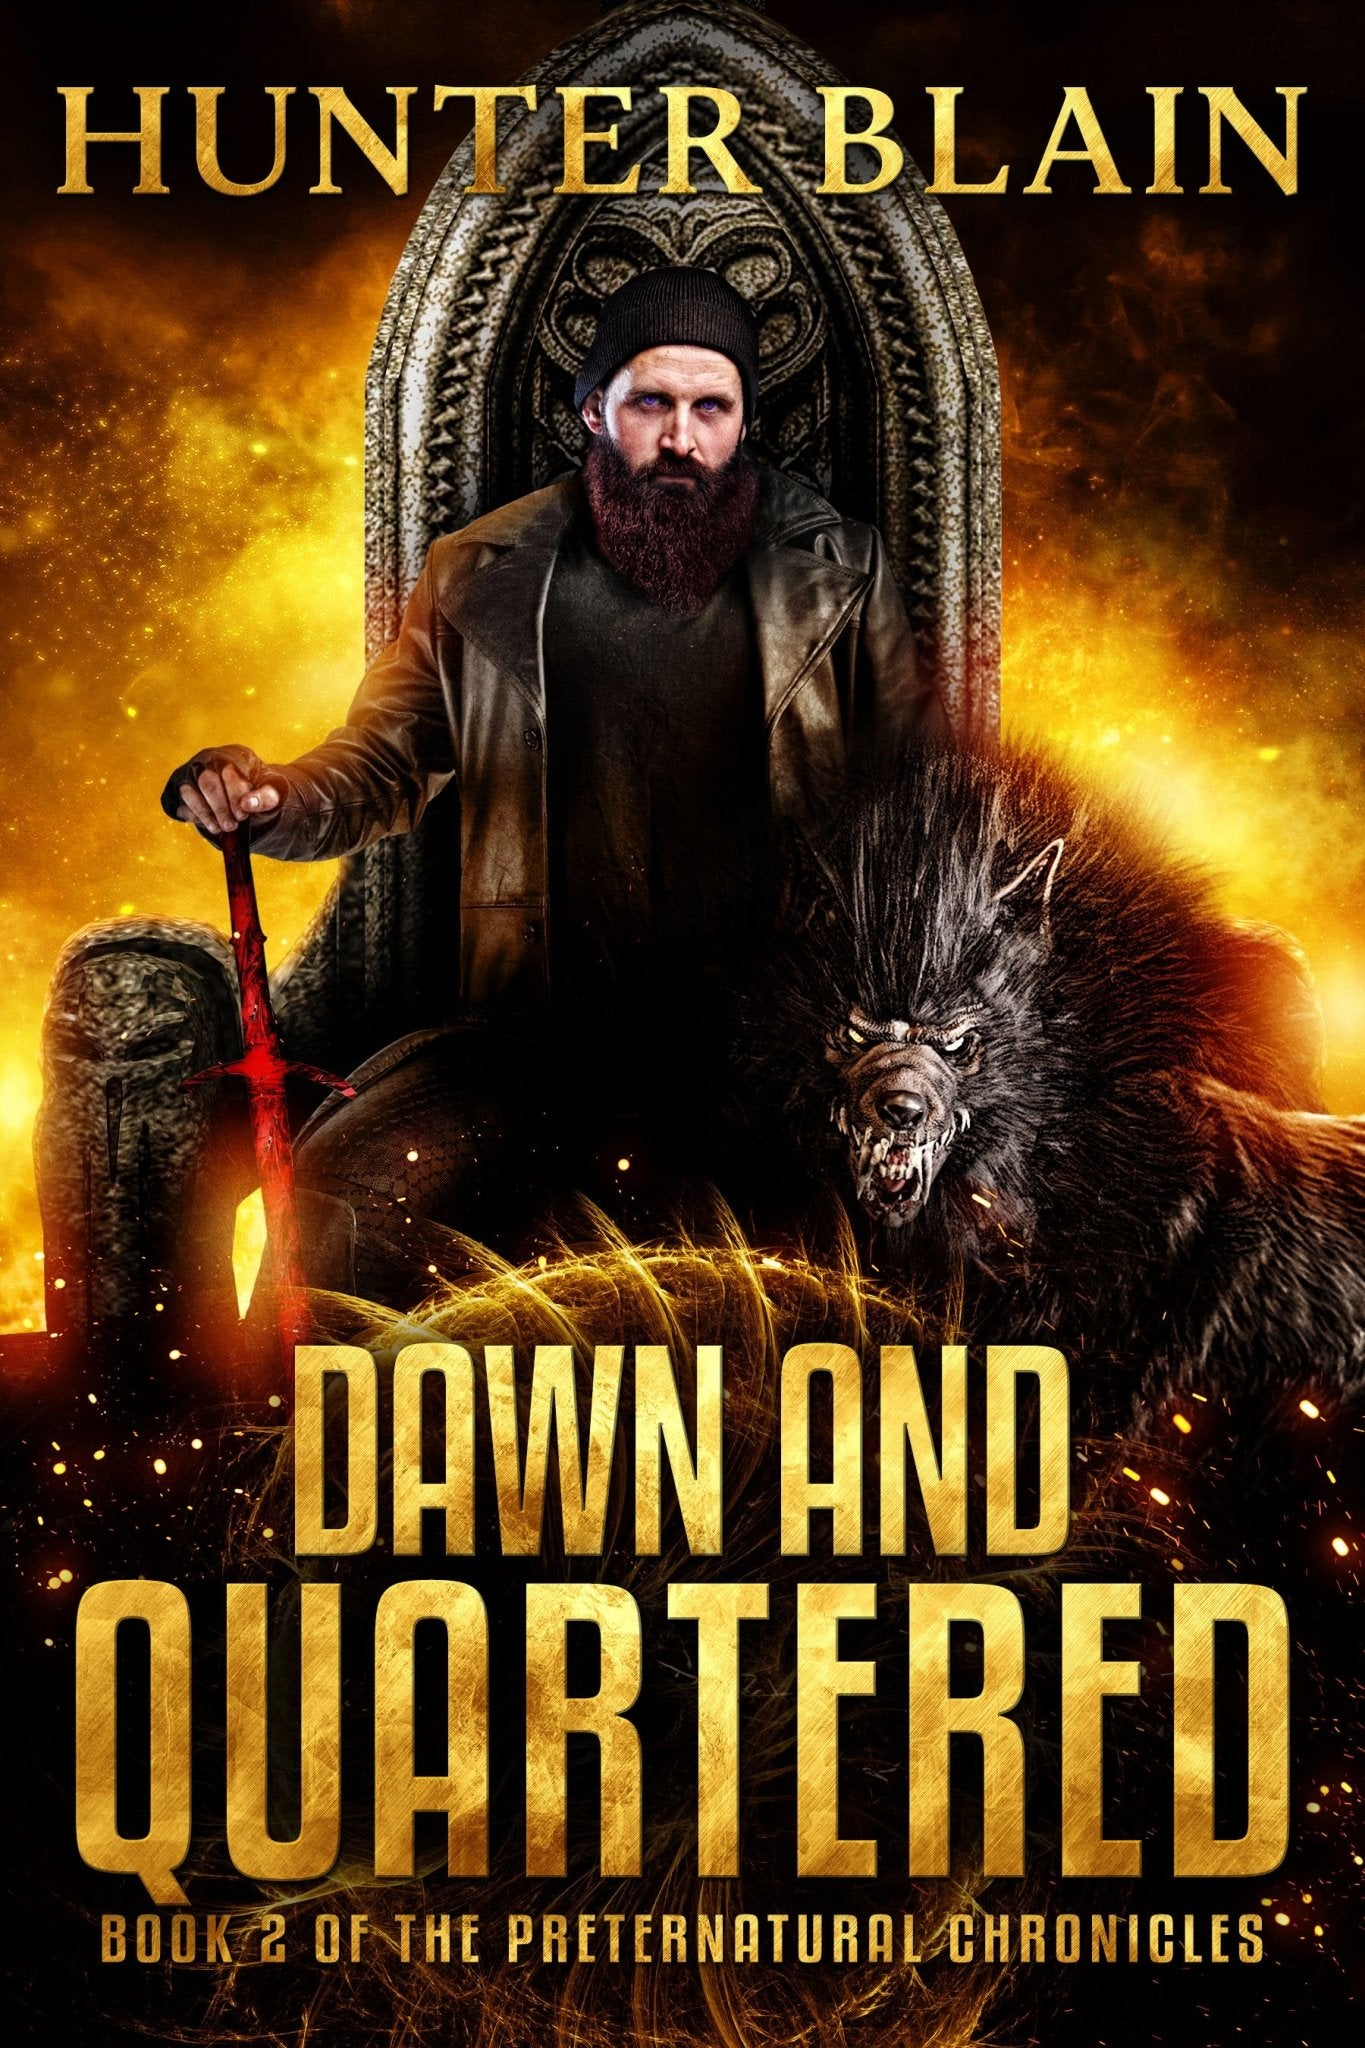 Dawn and Quartered: Preternatural Chronicles Book 2 - Temple Verse Gear